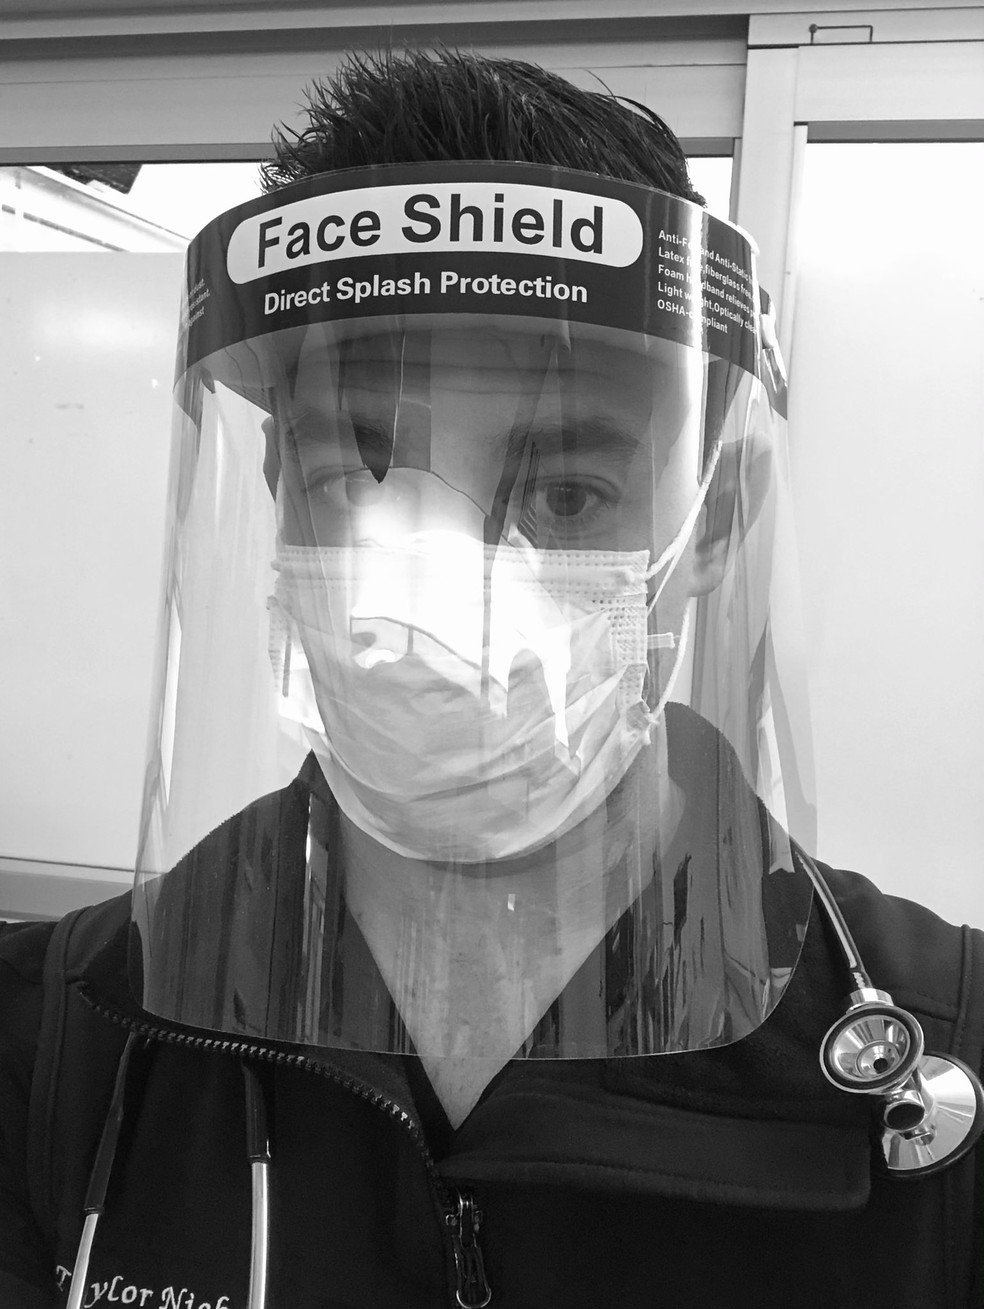 médico usando face shield